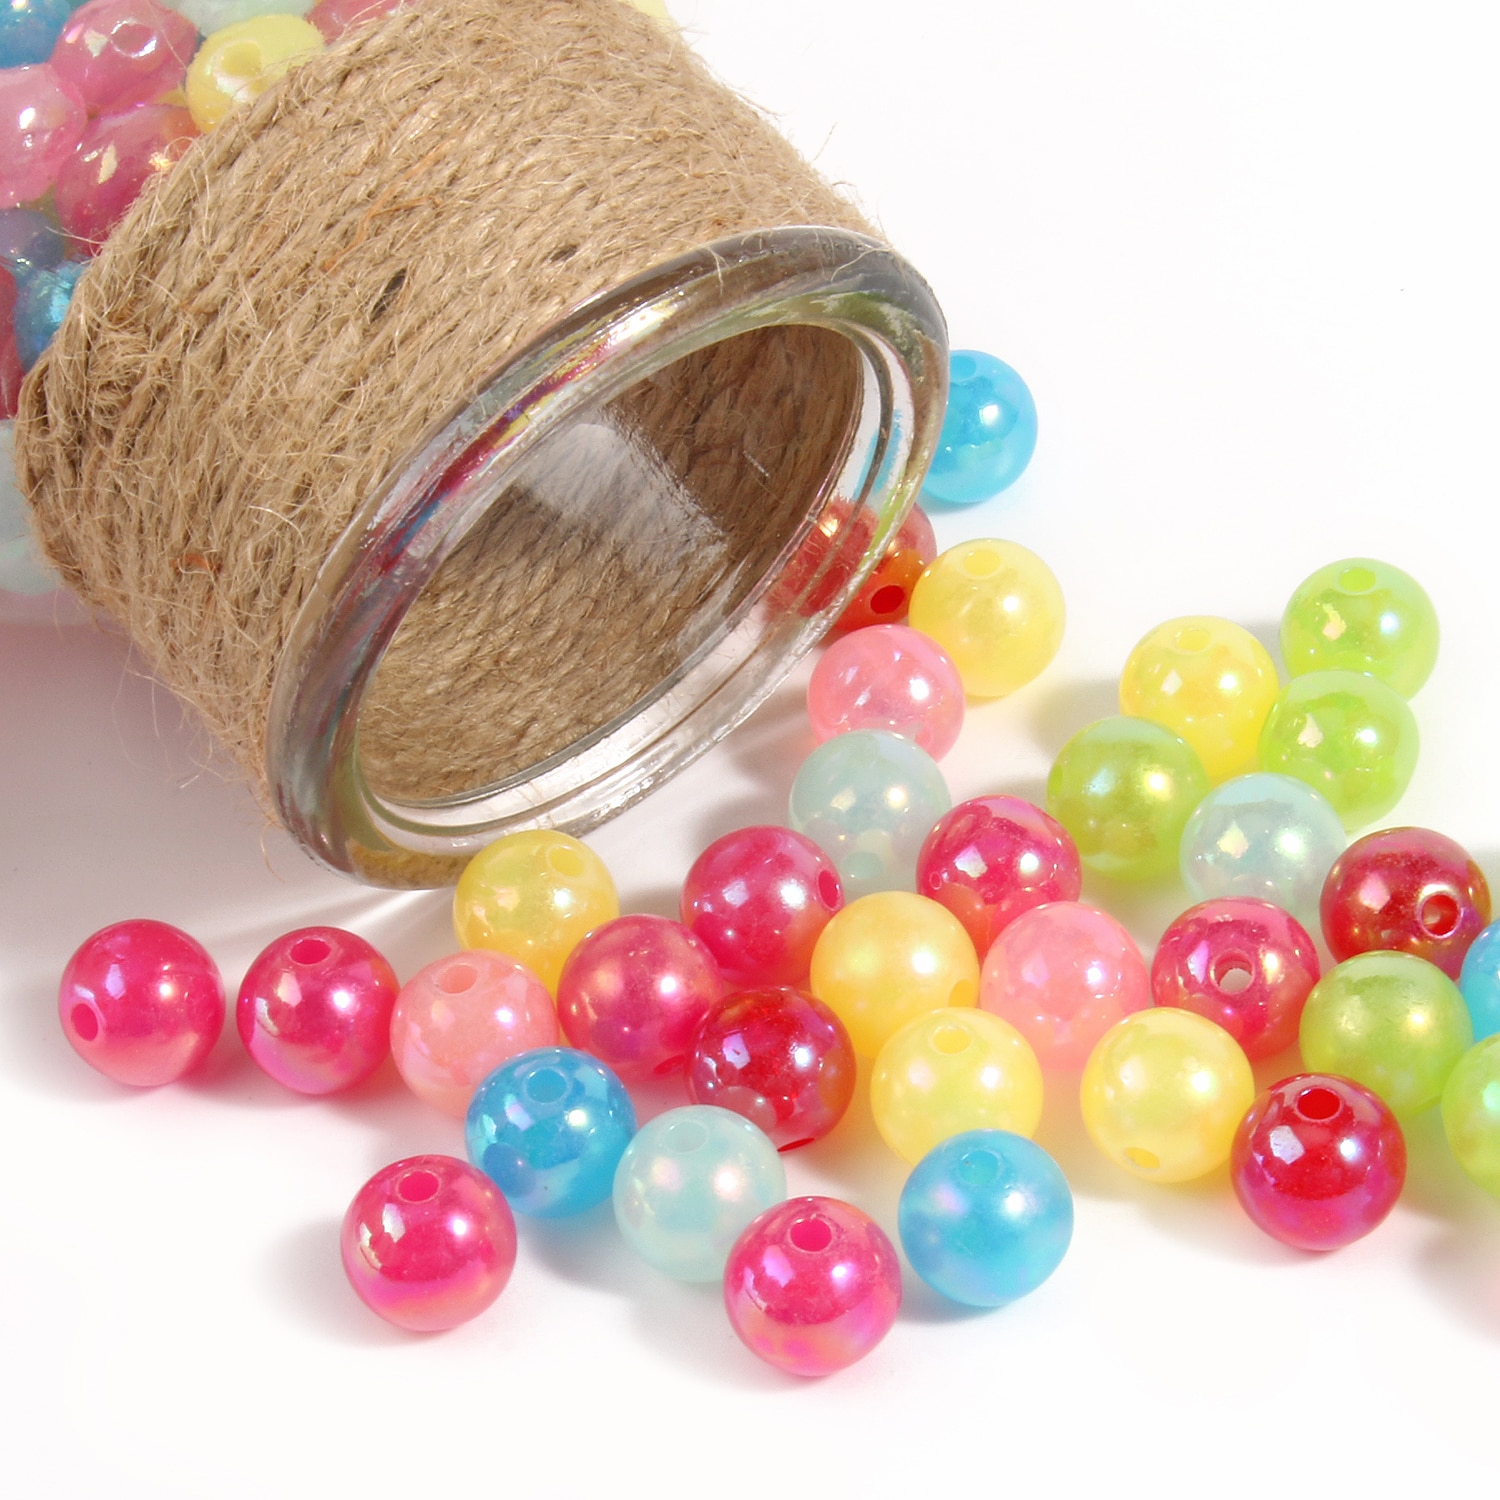 6-14mm Candy Color AB Acrylic Round Beads 20-300Pcs Loose Spacer Seed Beads For Jewelry Making Handmade DIY Bracelet Necklace 6 14mm candy color ab acrylic round beads 20 300pcs loose spacer seed beads for jewelry making handmade diy bracelet necklace